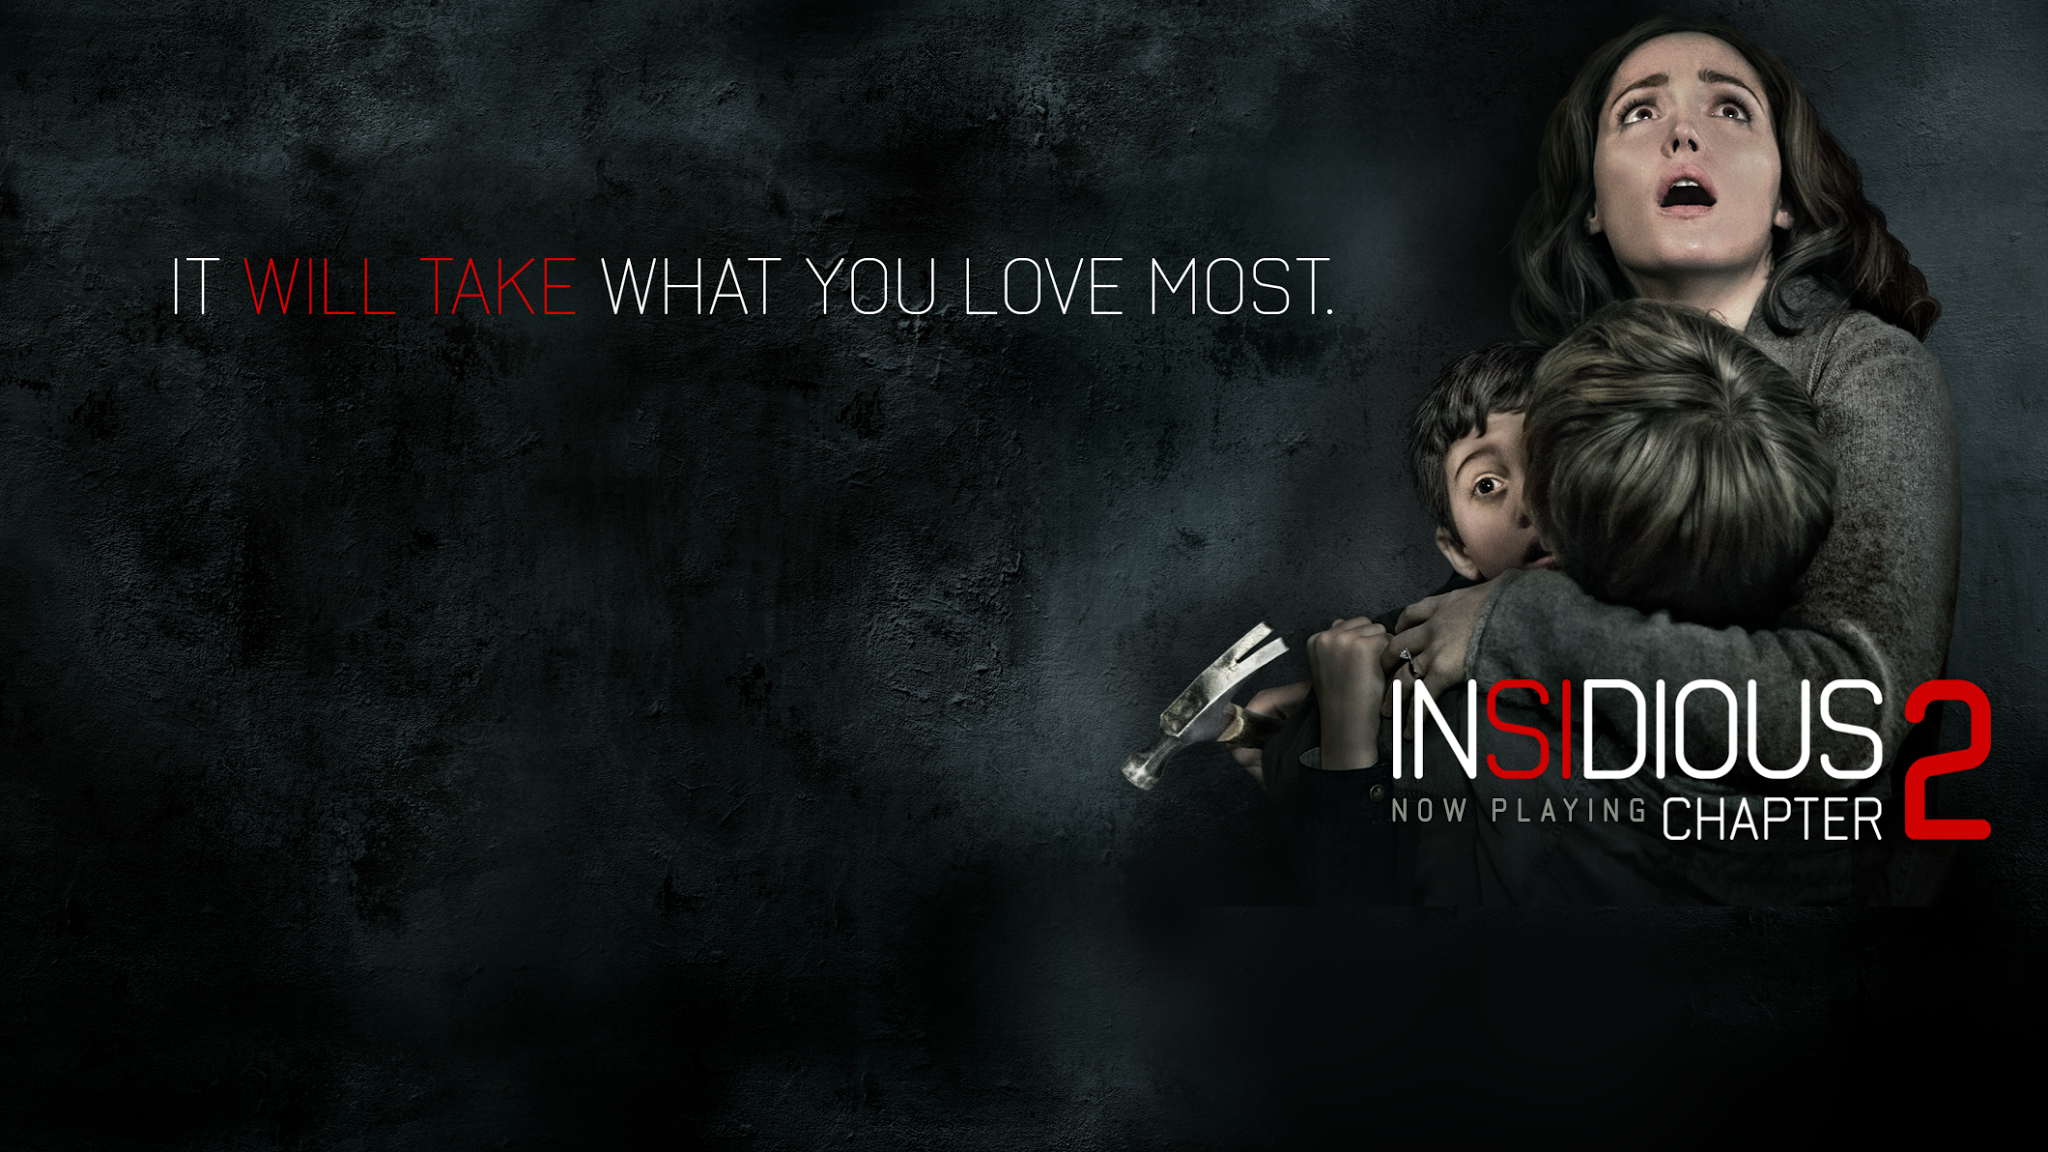 Download Insidious Horror Movie Poster HD Wallpaper. Search more high ...